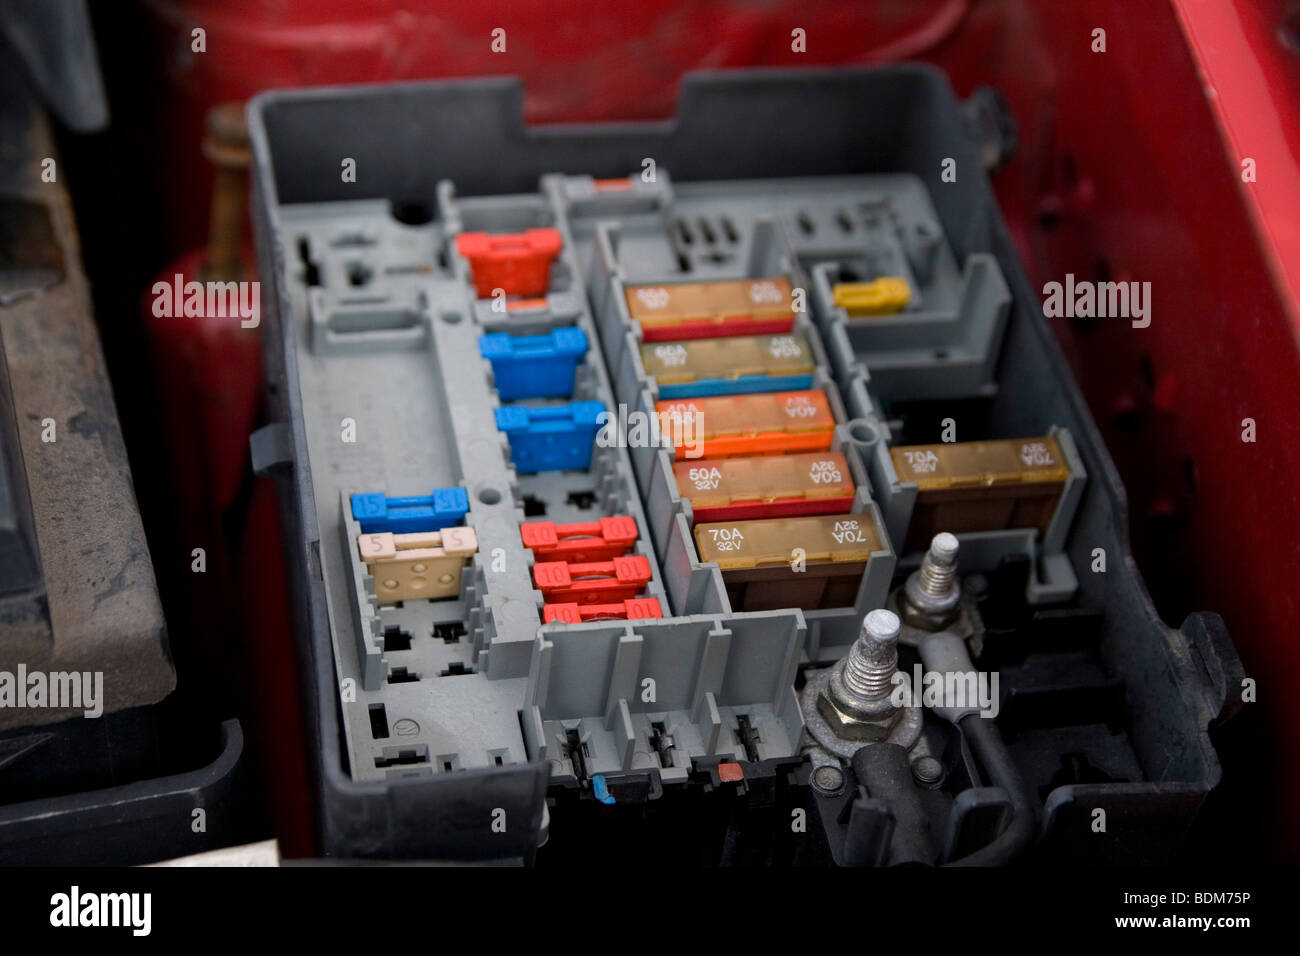 Fuse Box On A Citroen Berlingo Auto Electrical Wiring Diagram 95 Ford  Explorer Fuse Box Diagram Citroen Fuse Box